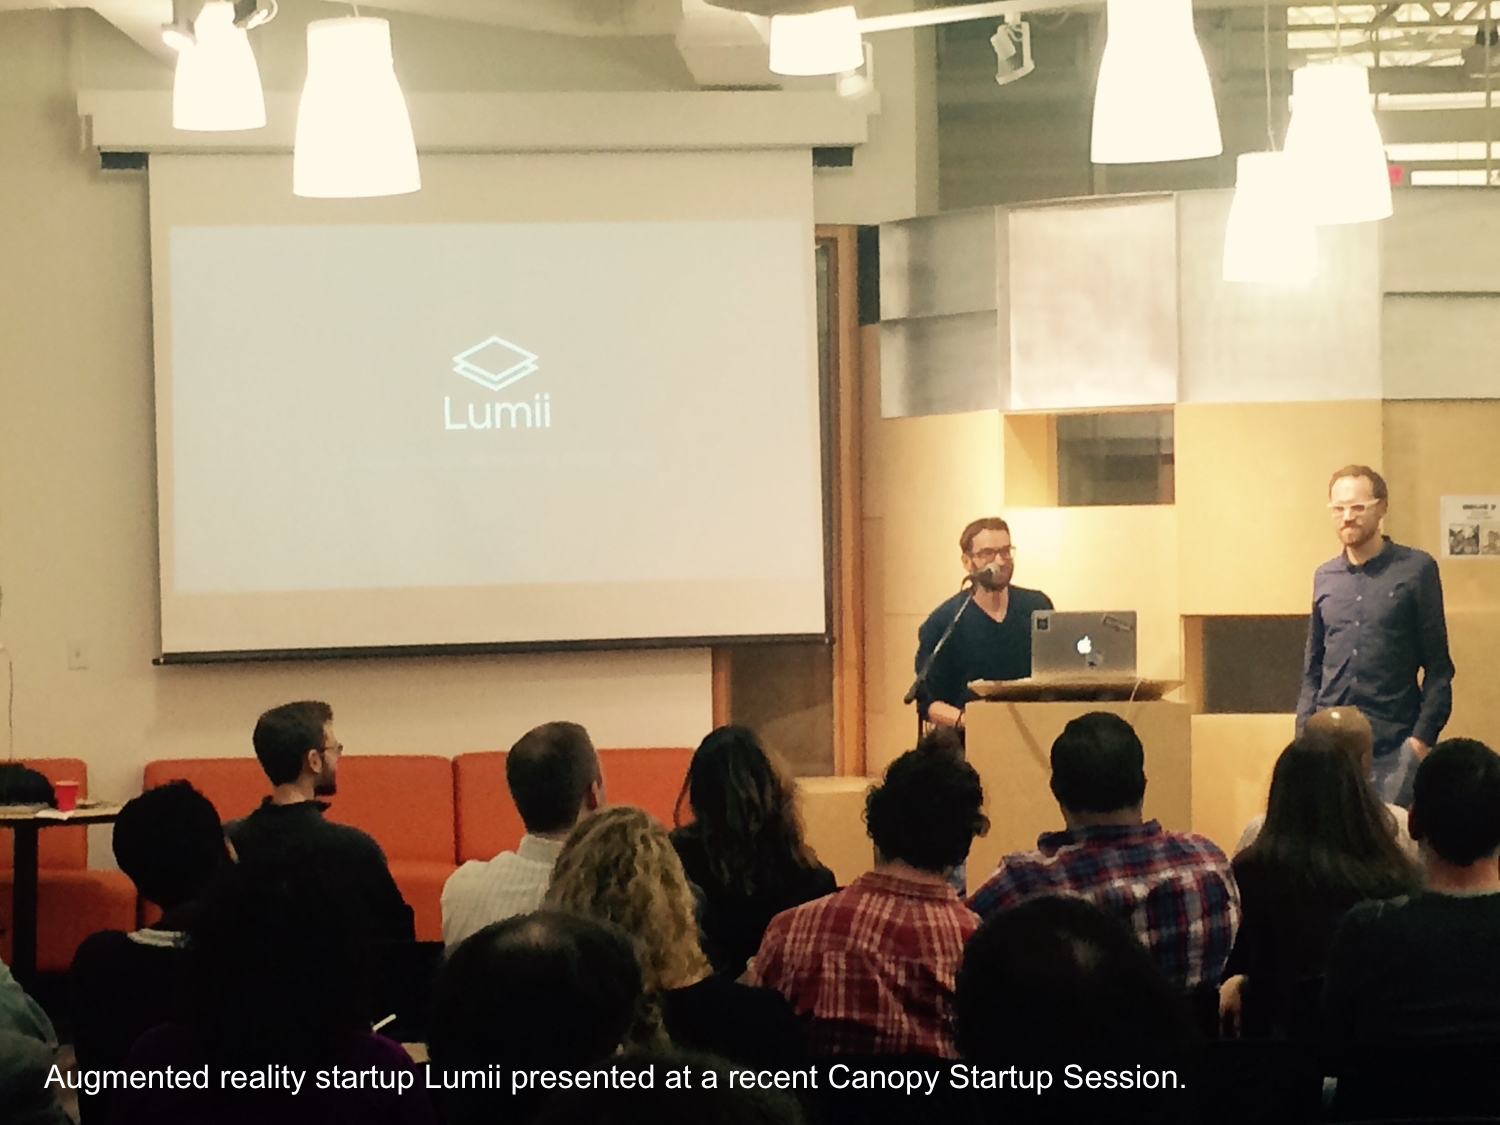 Augmented reality startup Lumii presented at a recent Startup Session.